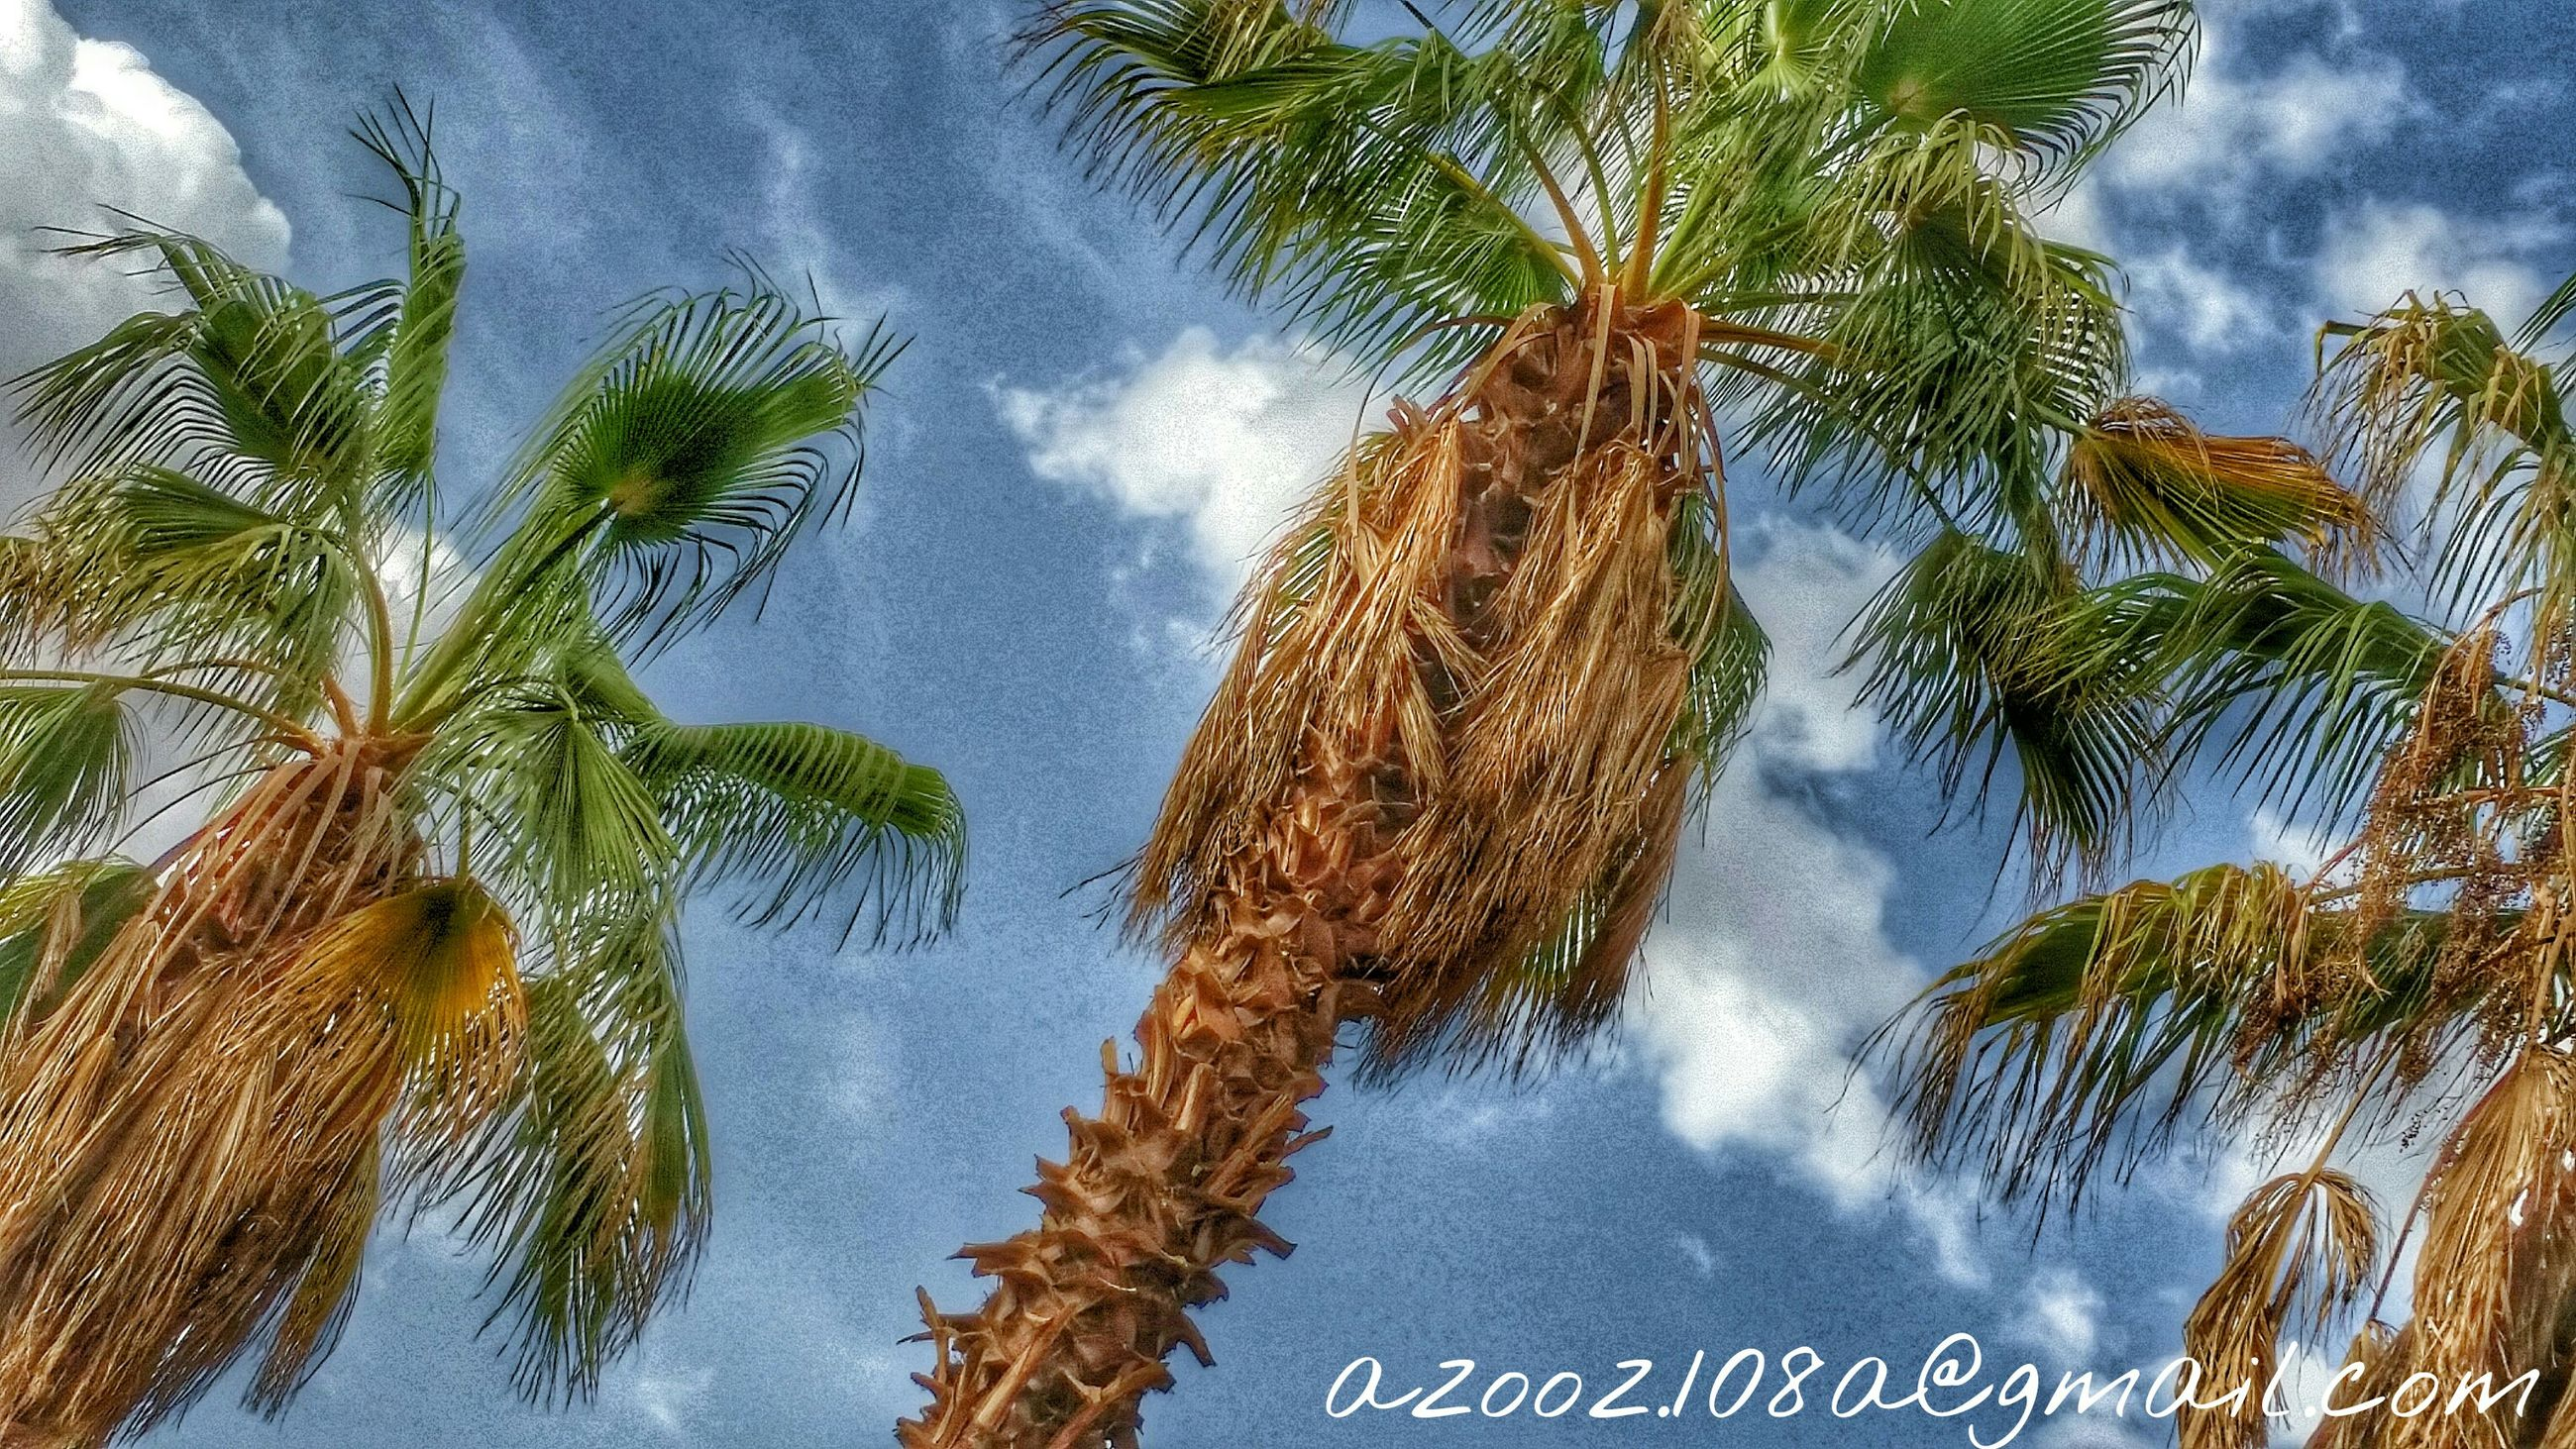 tree, sky, palm tree, low angle view, cloud - sky, growth, nature, tranquility, beauty in nature, cloudy, cloud, day, branch, scenics, leaf, tree trunk, outdoors, tall - high, tranquil scene, no people